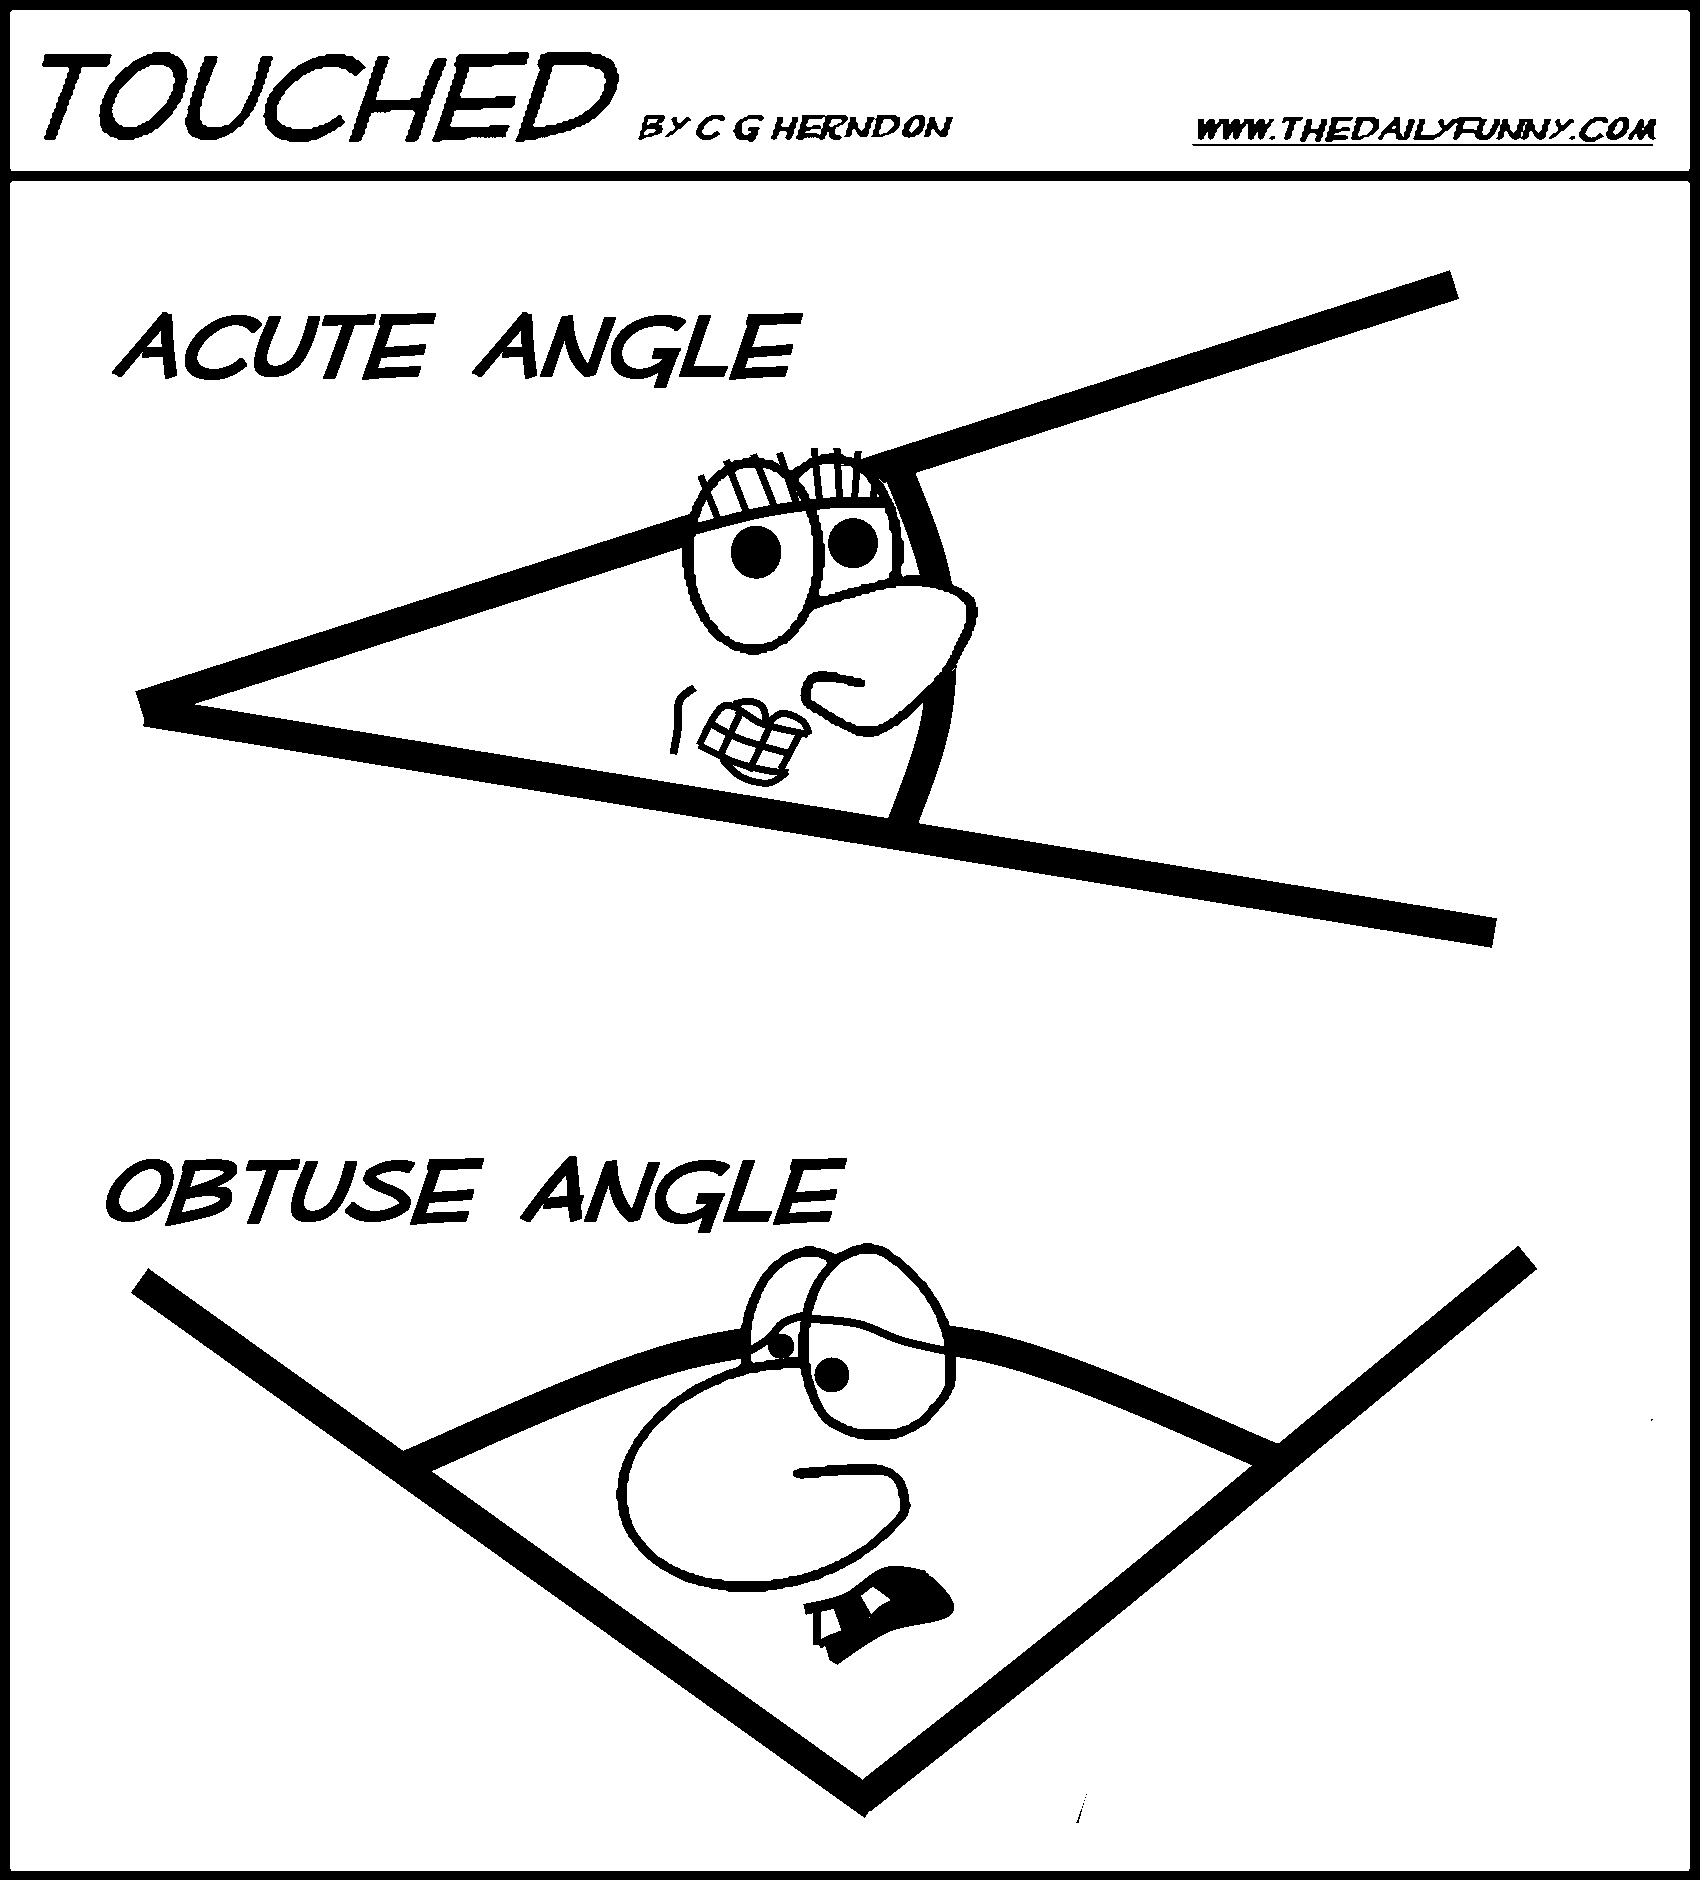 Acute And Obtuse Angles Images